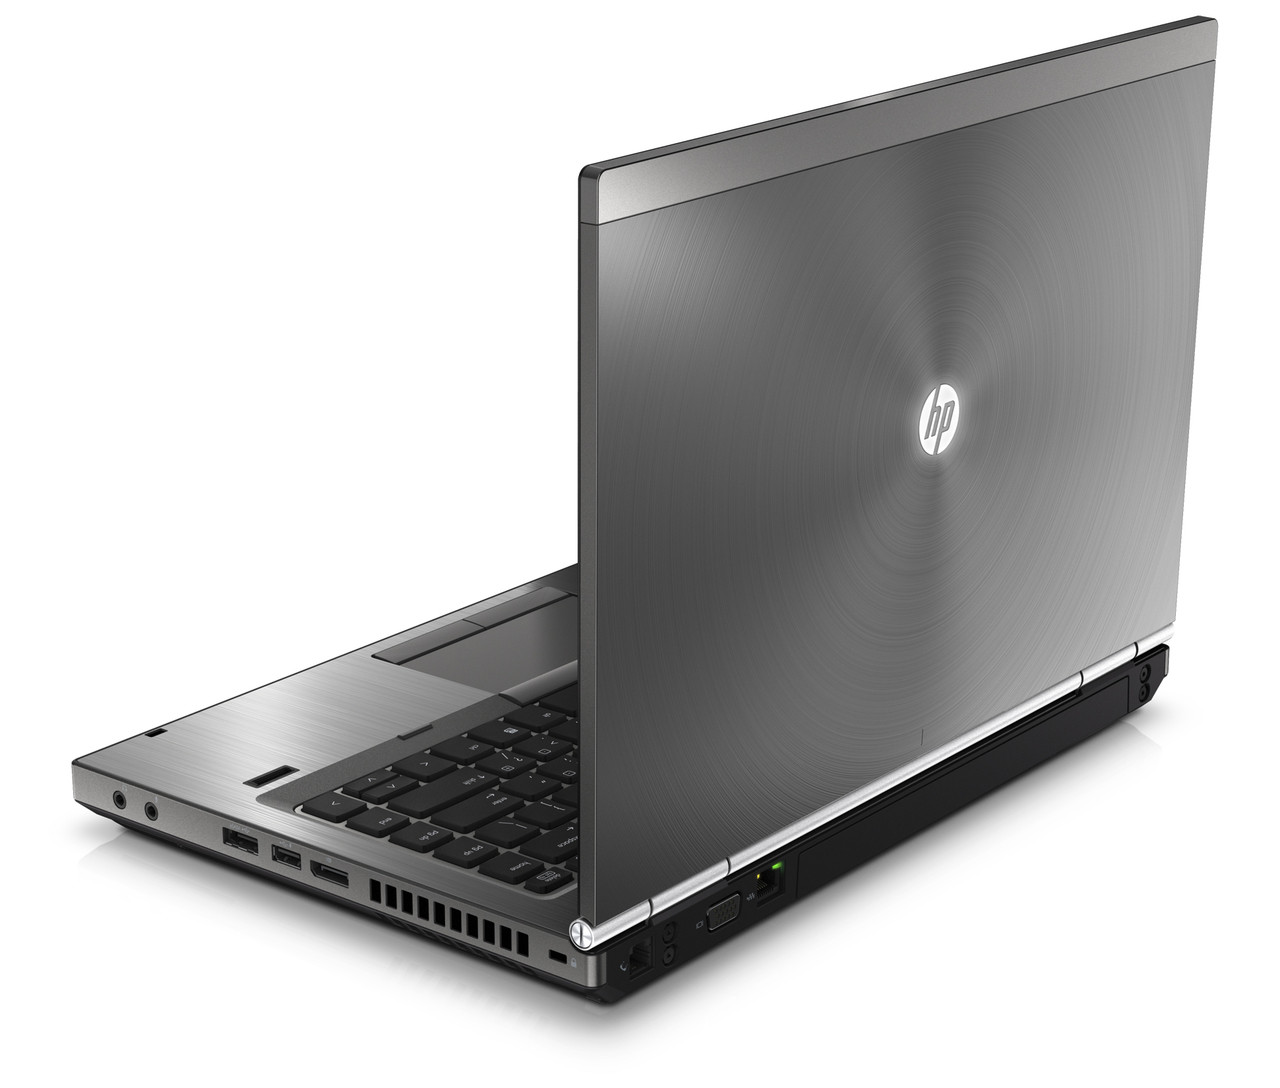 Hp Elitebook 8740w Open Back View